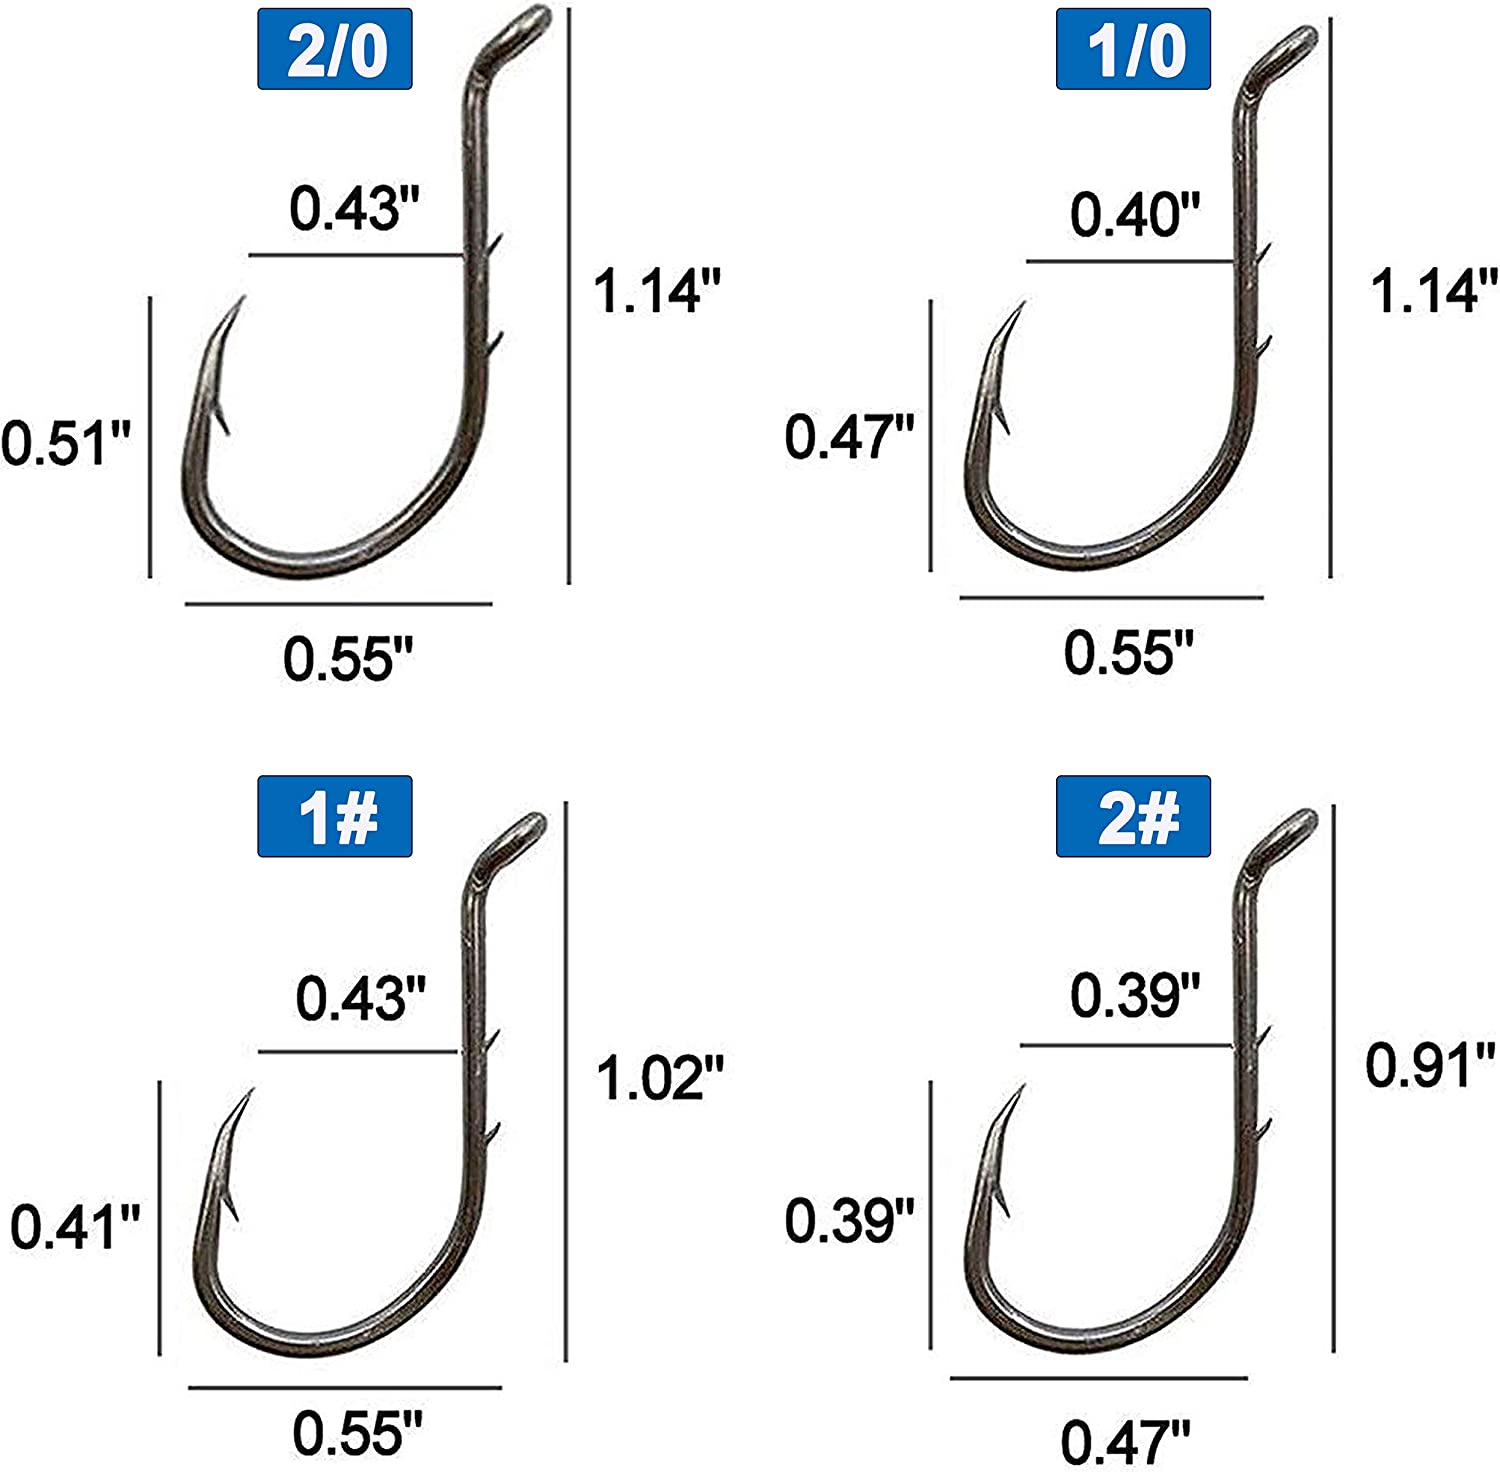 Details about  /200//Box Hi-Carbon Steel Octopus Fishing Hooks Barbed Sharpened Fish Hooks 7Sizes